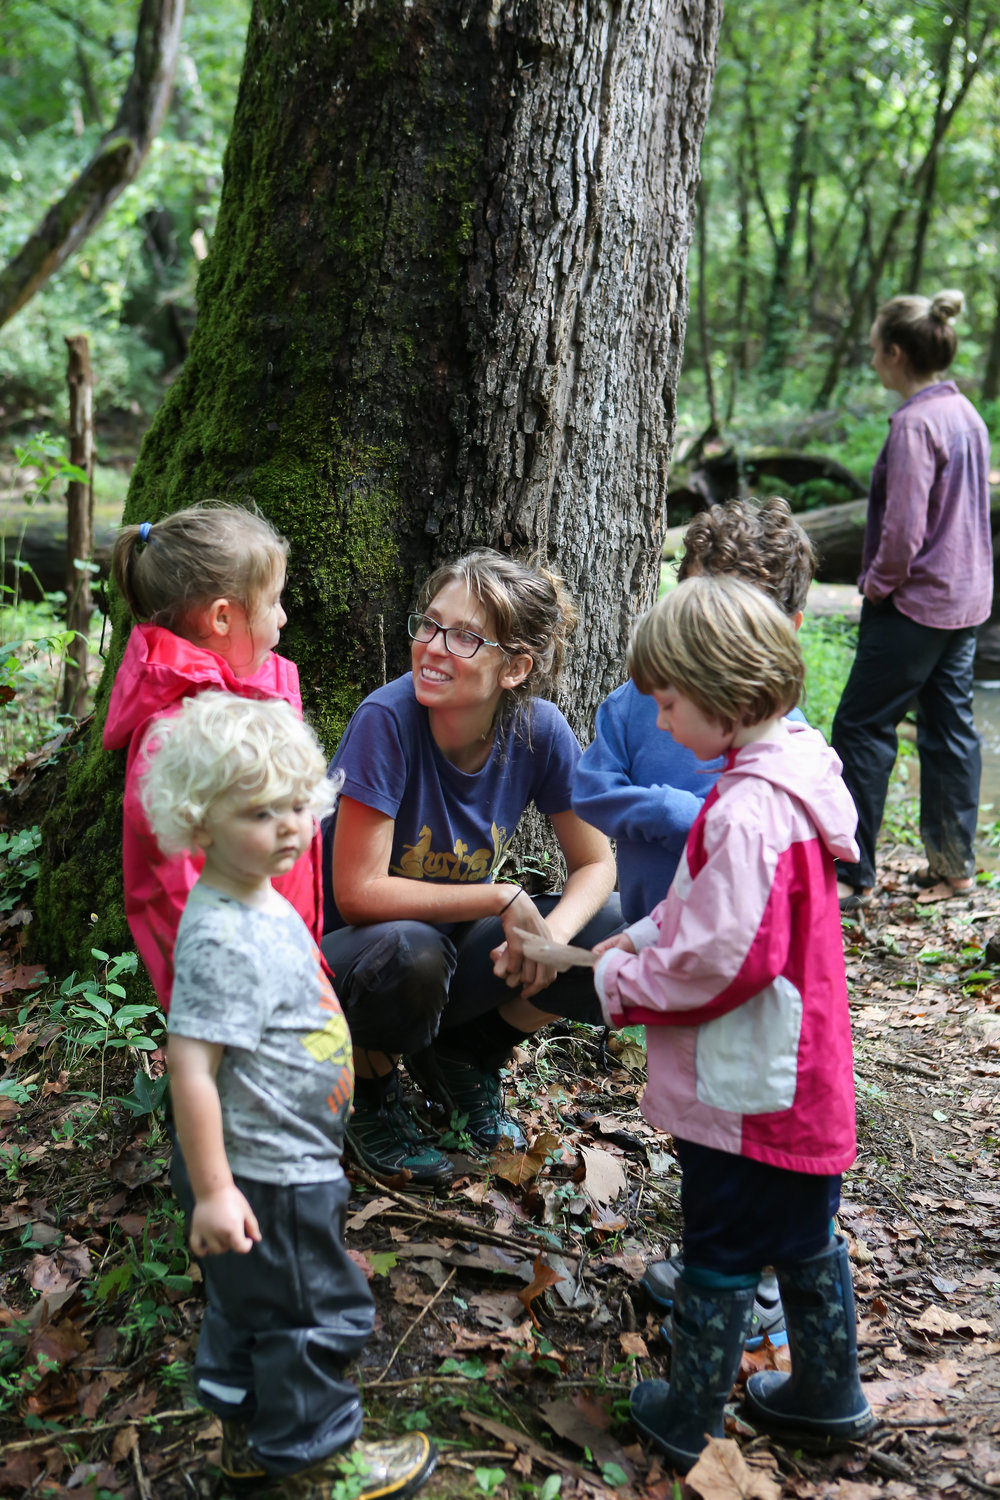 Our forest school director, Sara Otis, takes a moment to deeply explore something the kids have already started to explore on their own initiative. This teaches them the value of discovery.